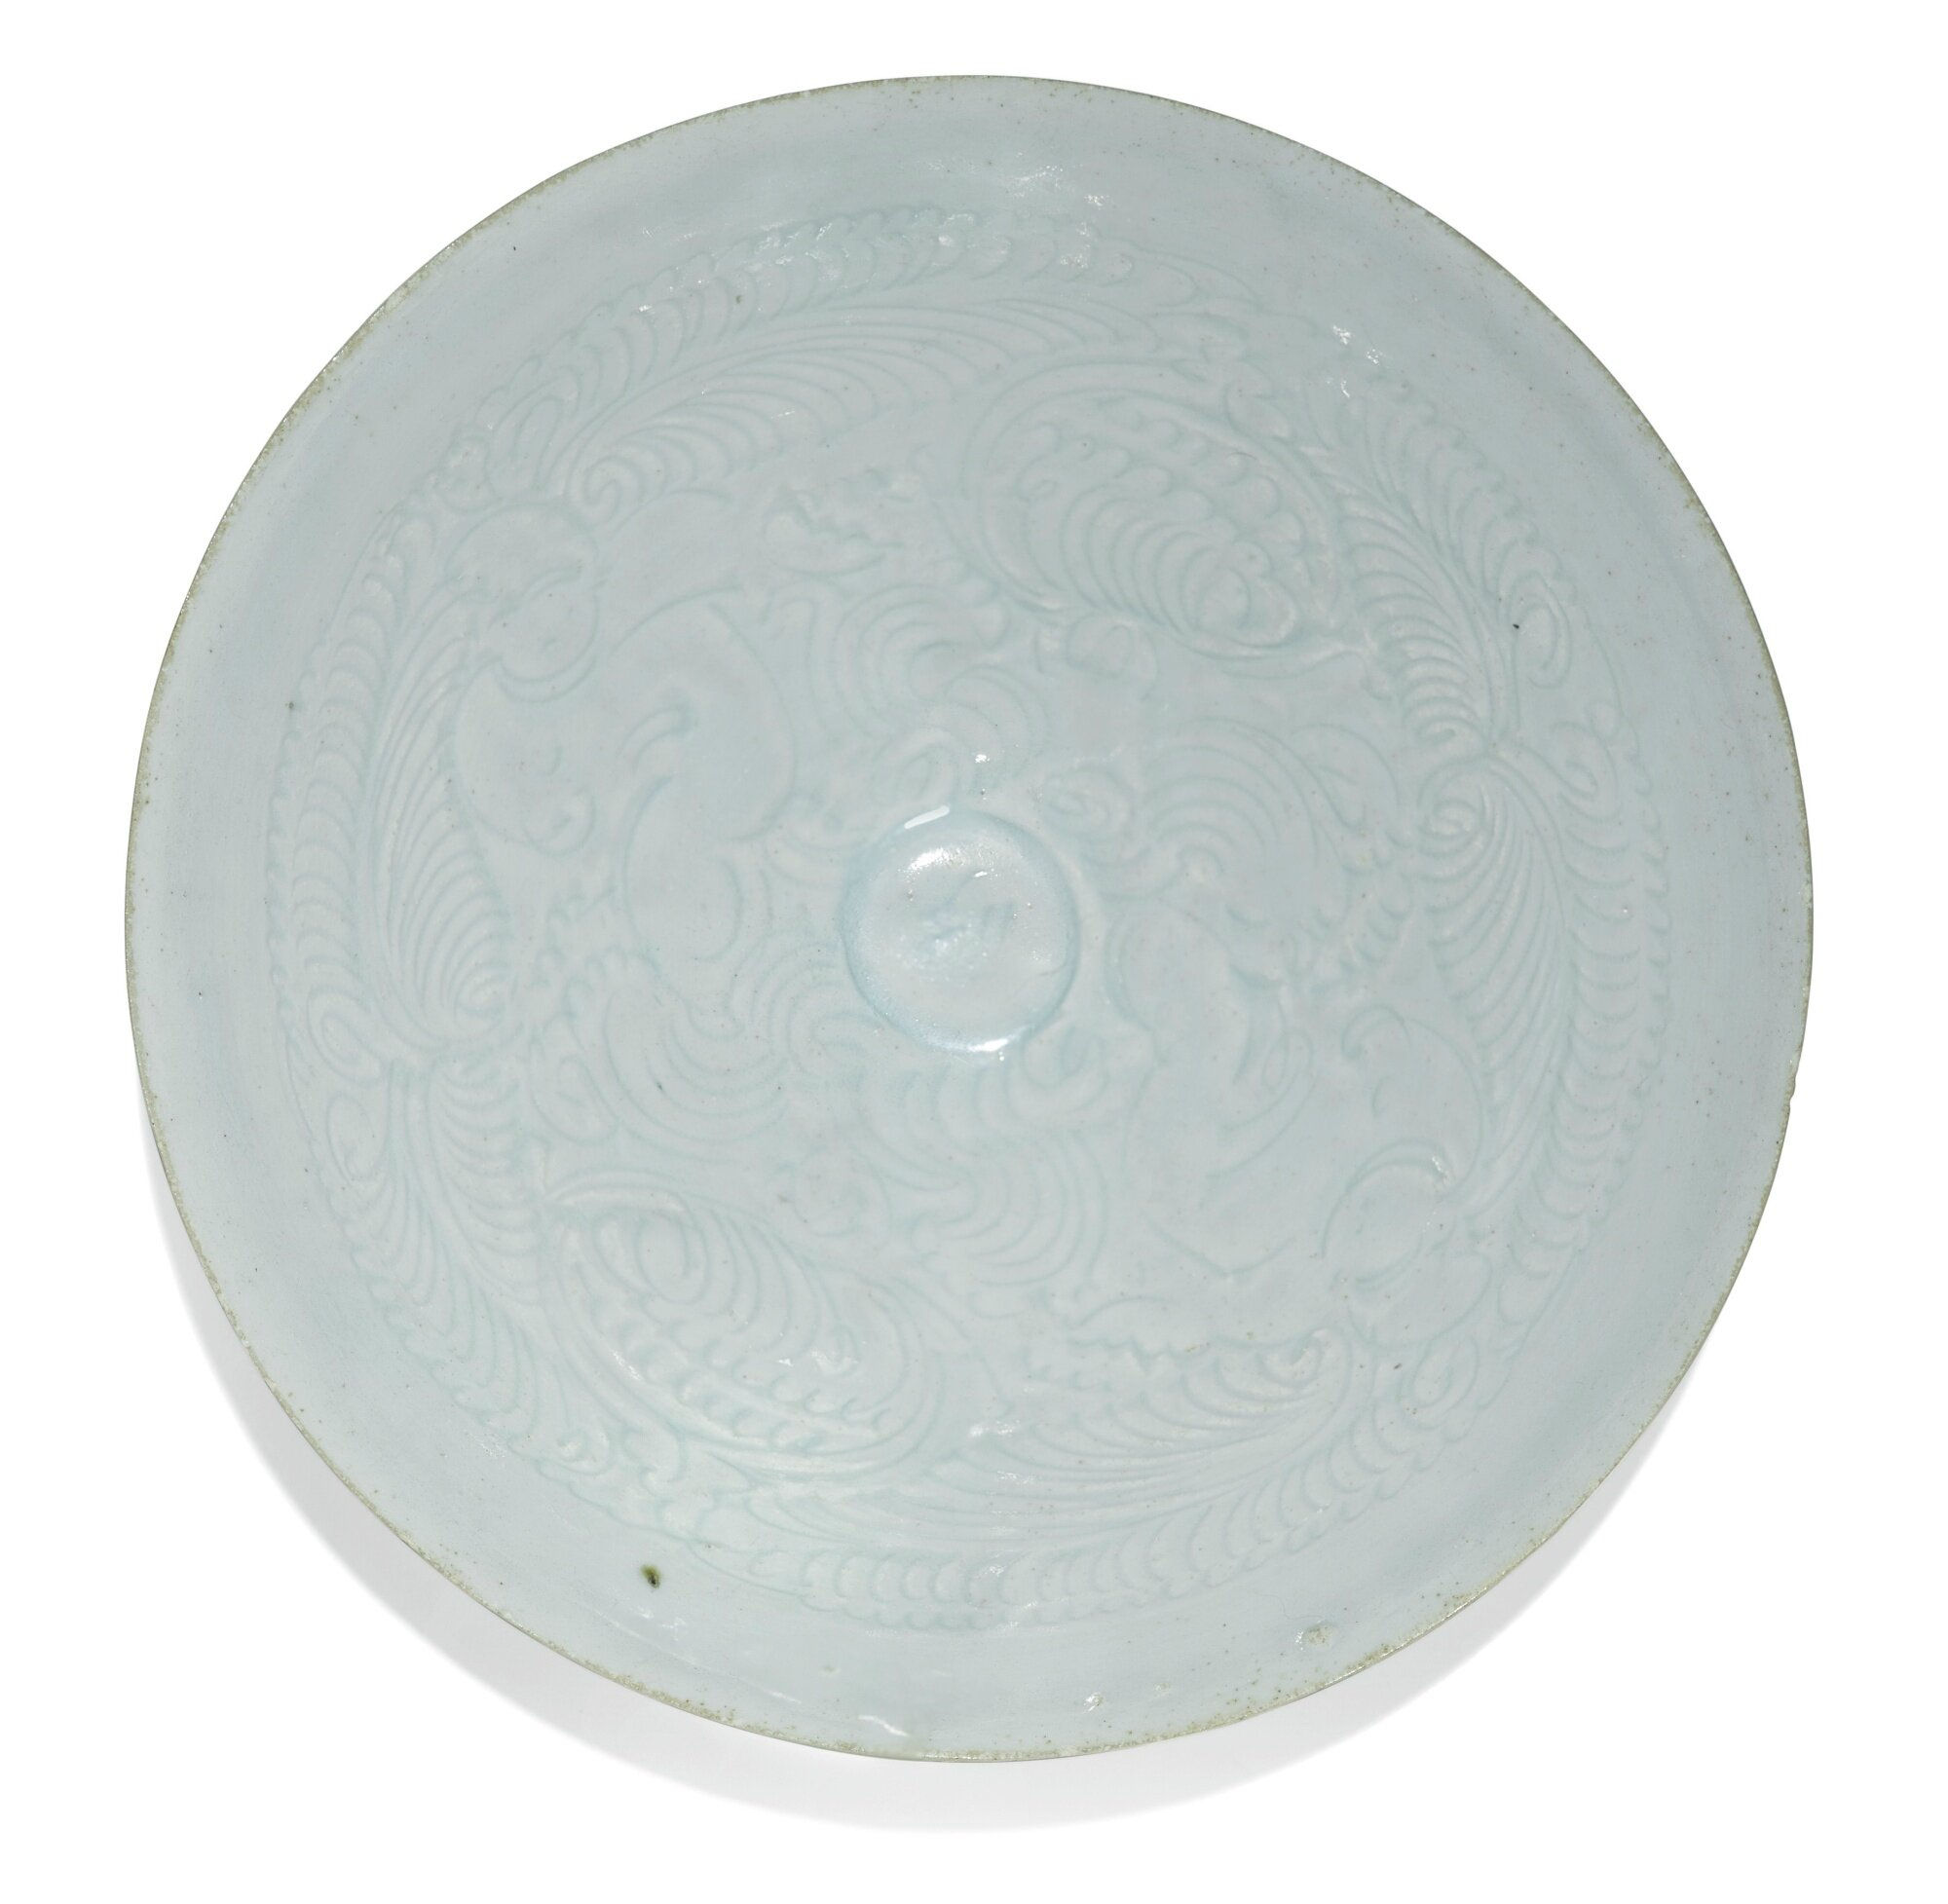 A Qingbai 'boys' bowl, Southern Song dynasty